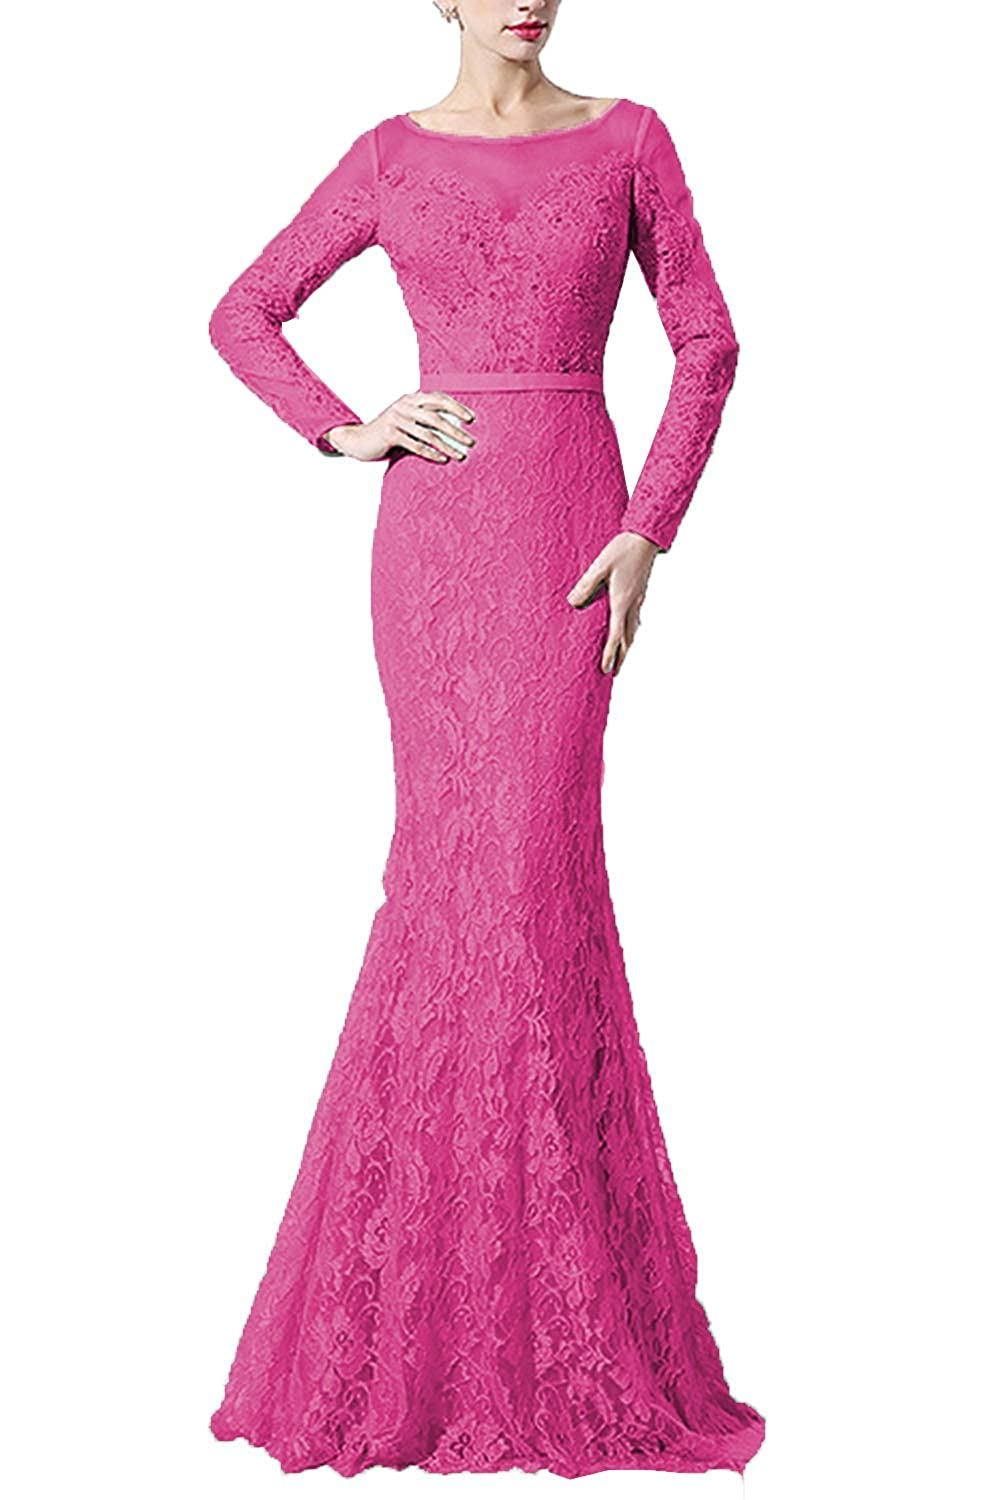 Hot Pink SDRESS Women's Lace Mermaid Evening Dress with Sleeves Crystal Beaded Formal Dress Long